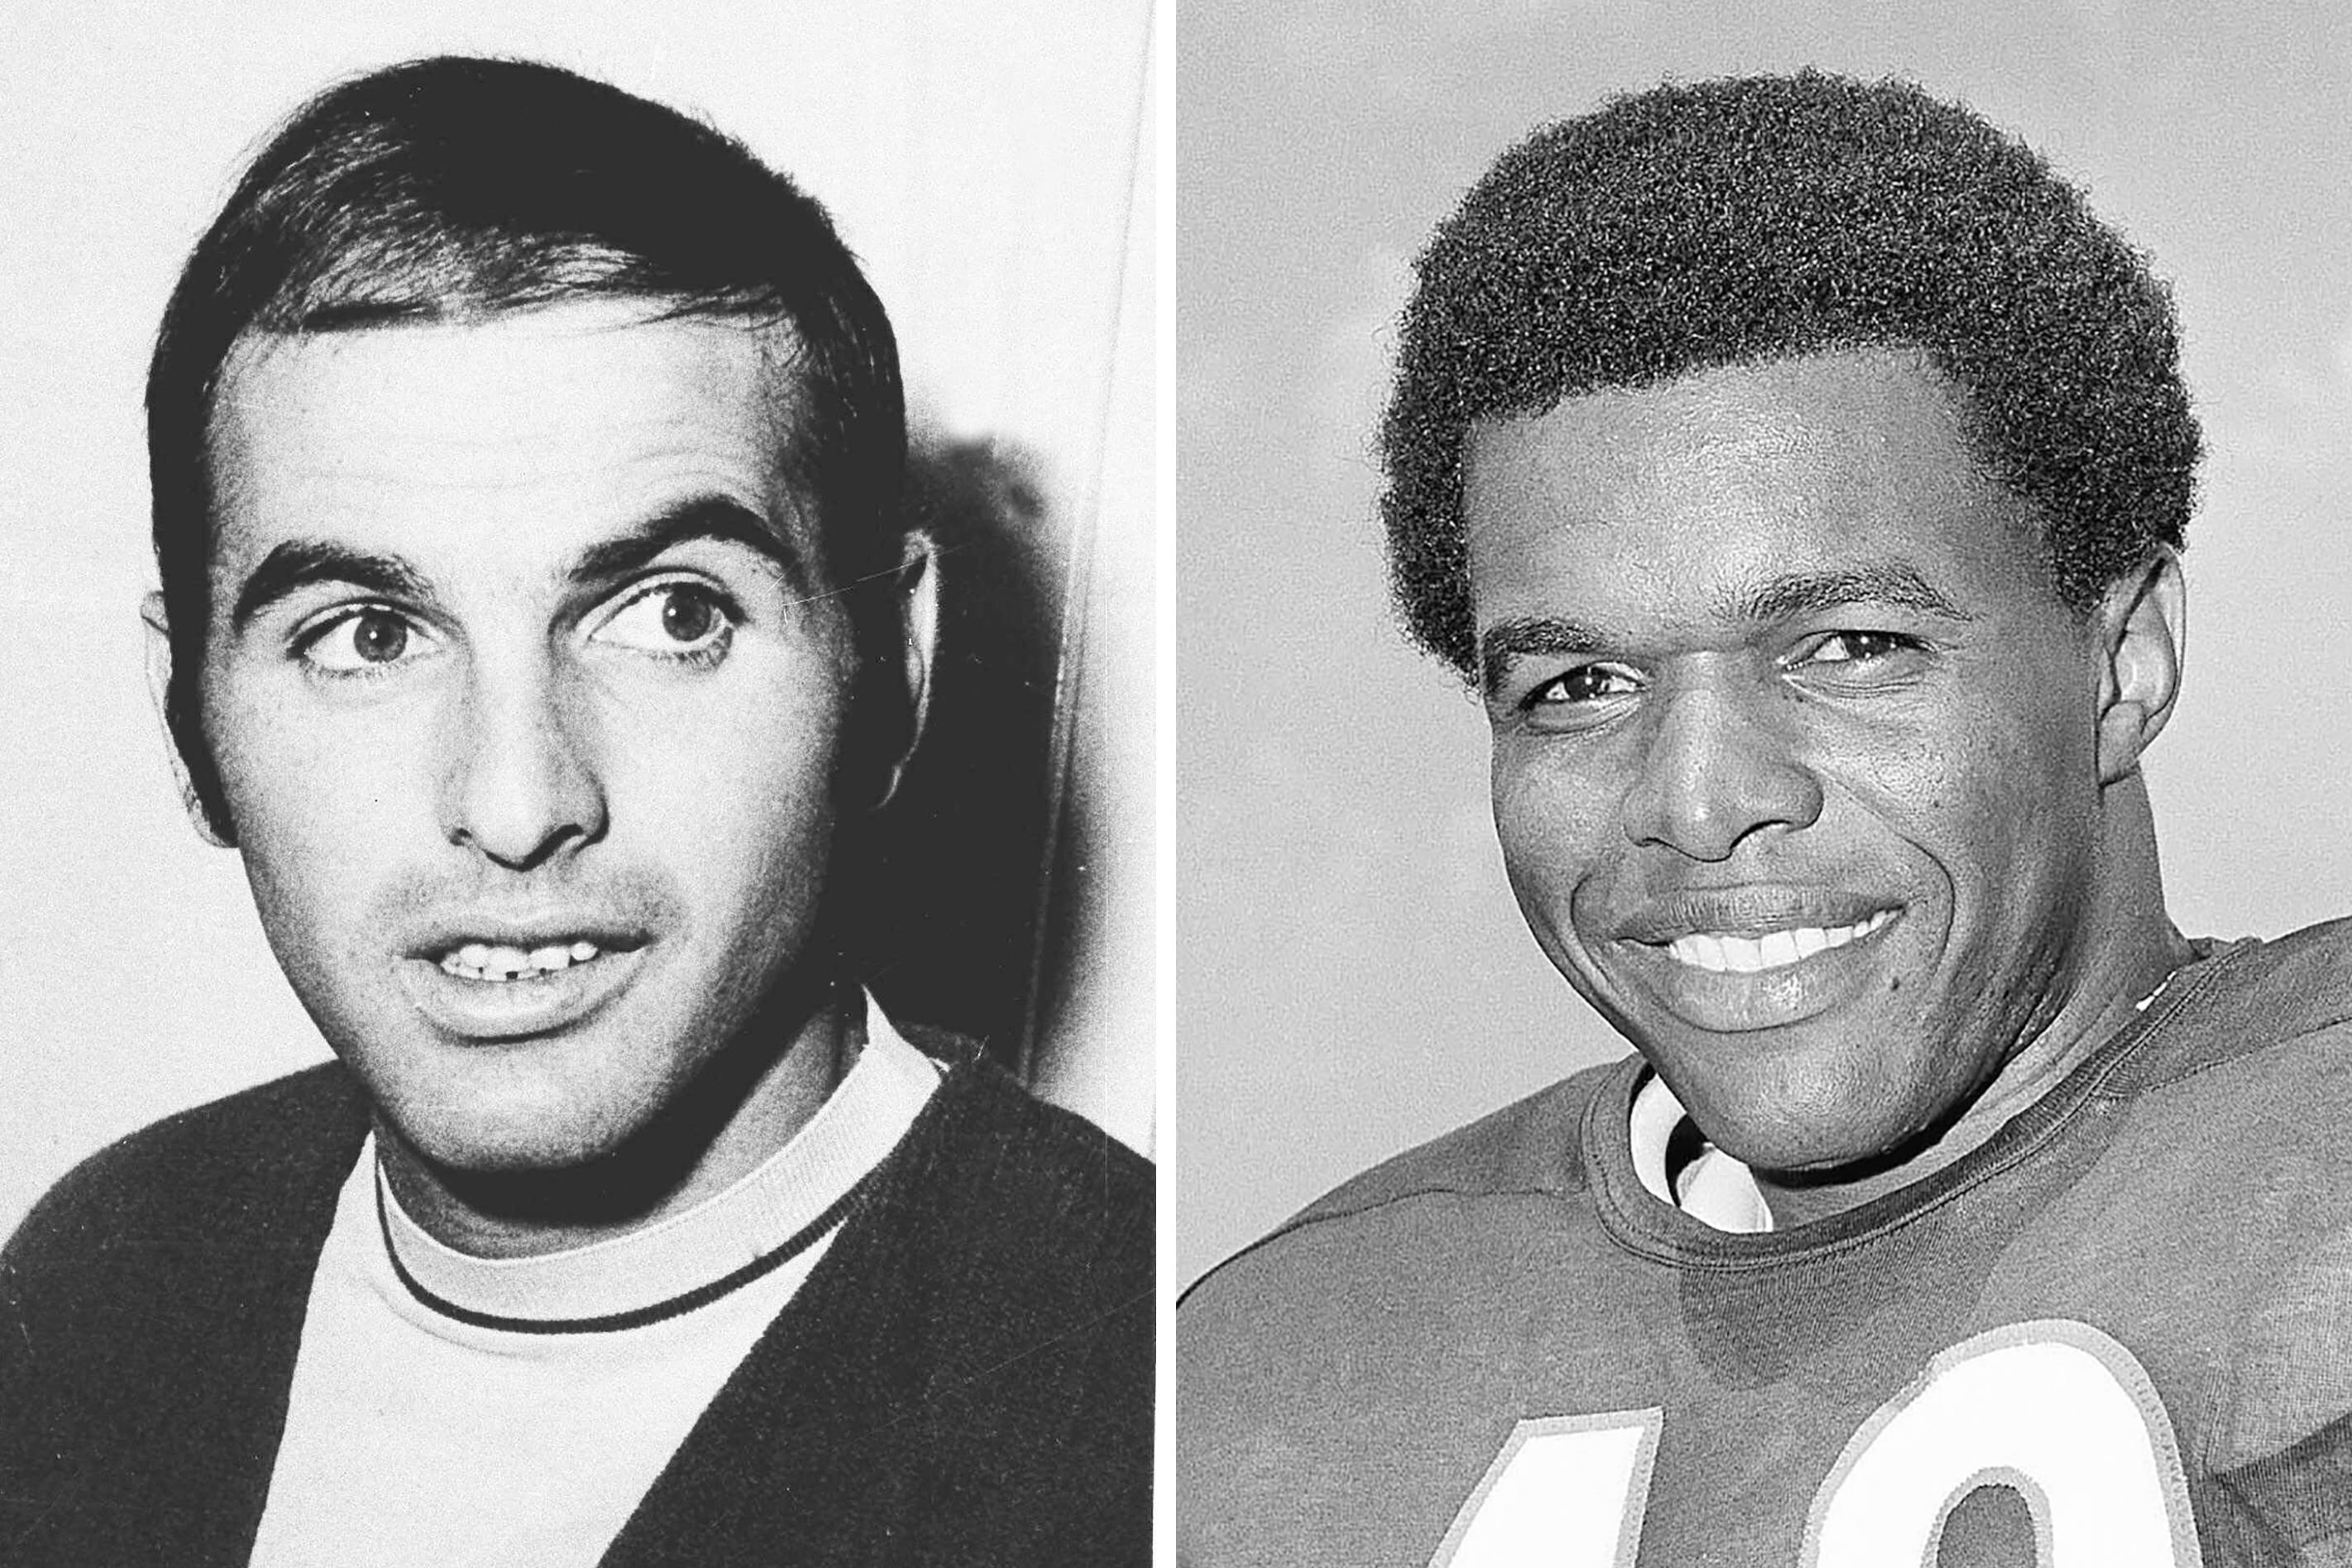 """FILE - From left are 1970 file photos showing Brian Piccolo and Gale Sayers. Hall of Famer Gale Sayers, who made his mark as one of the NFL's best all-purpose running backs and was later celebrated for his enduring friendship with Chicago Bears teammate Brian Piccolo, has died. He was 77. Nicknamed """"The Kansas Comet"""" and considered among the best open-field runners the game has ever seen, Sayers died Wednesday, Sept. 23, 2020, according to the Pro Football Hall of Fame. (AP Photo/File)"""